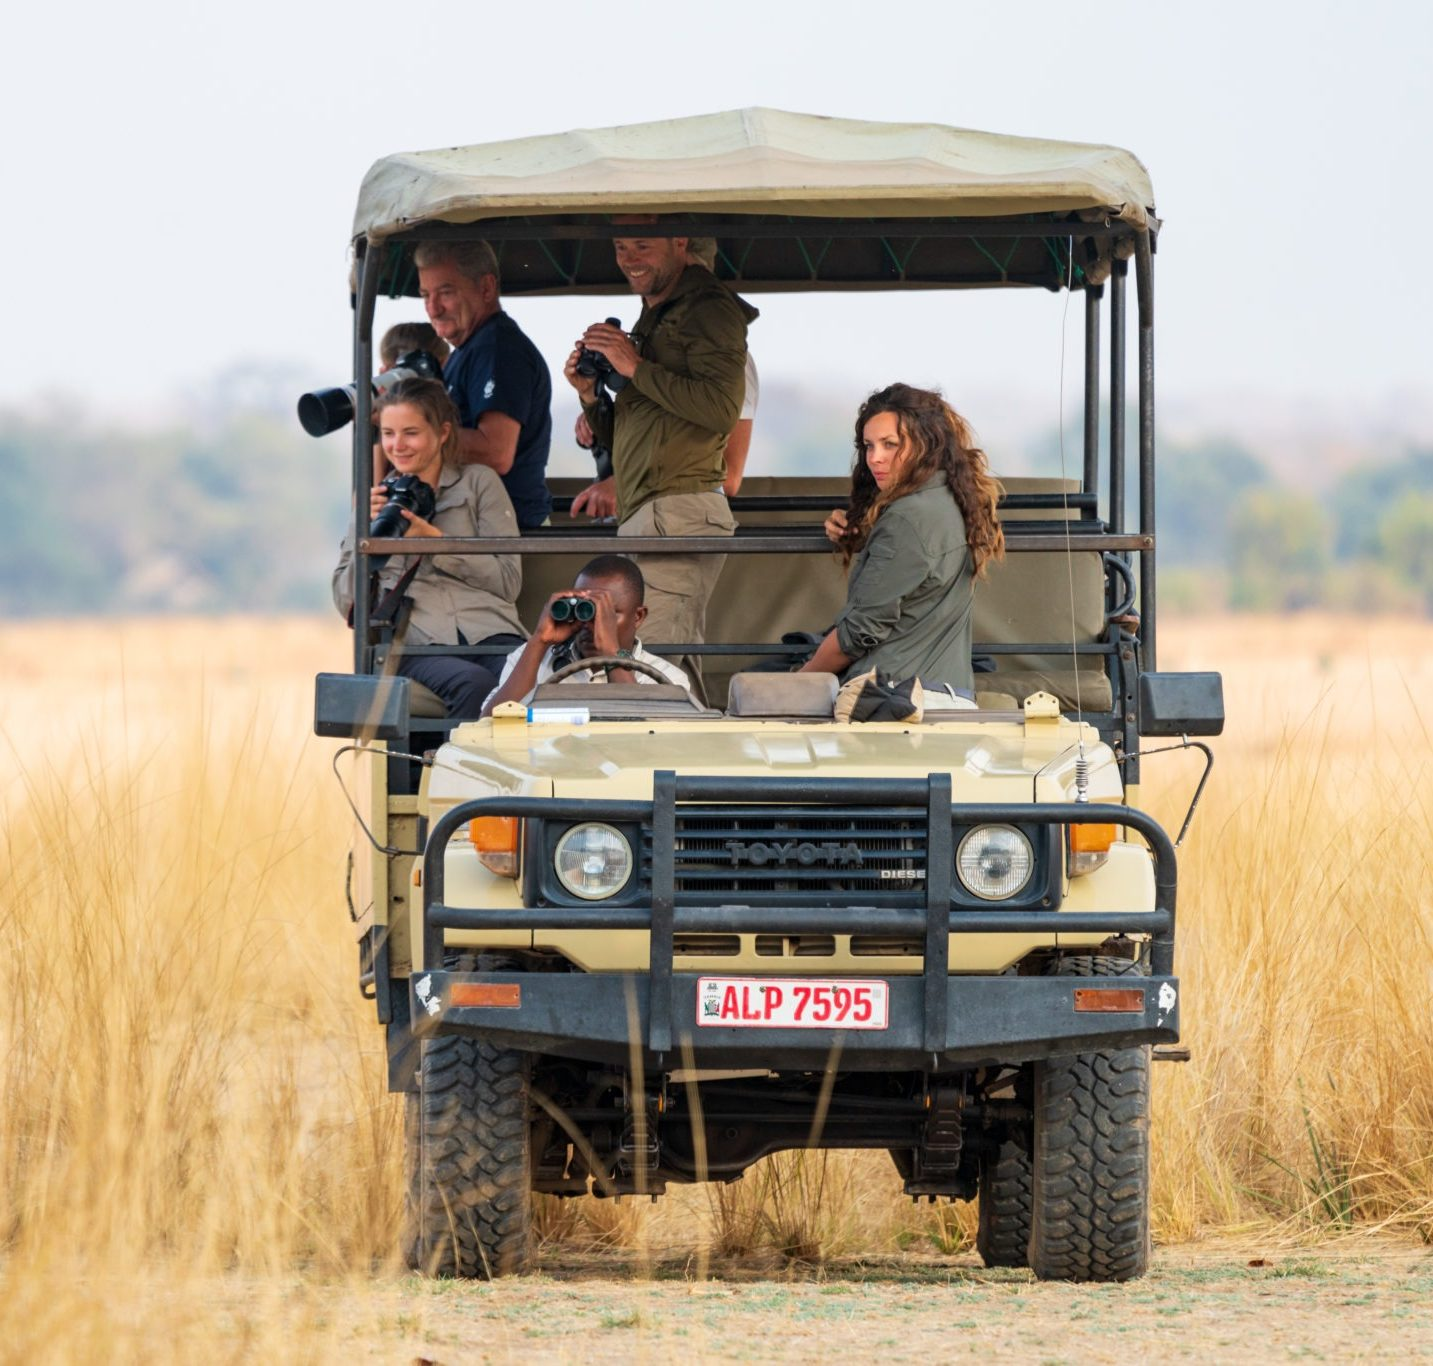 gesa guiding guests zambia photography safari